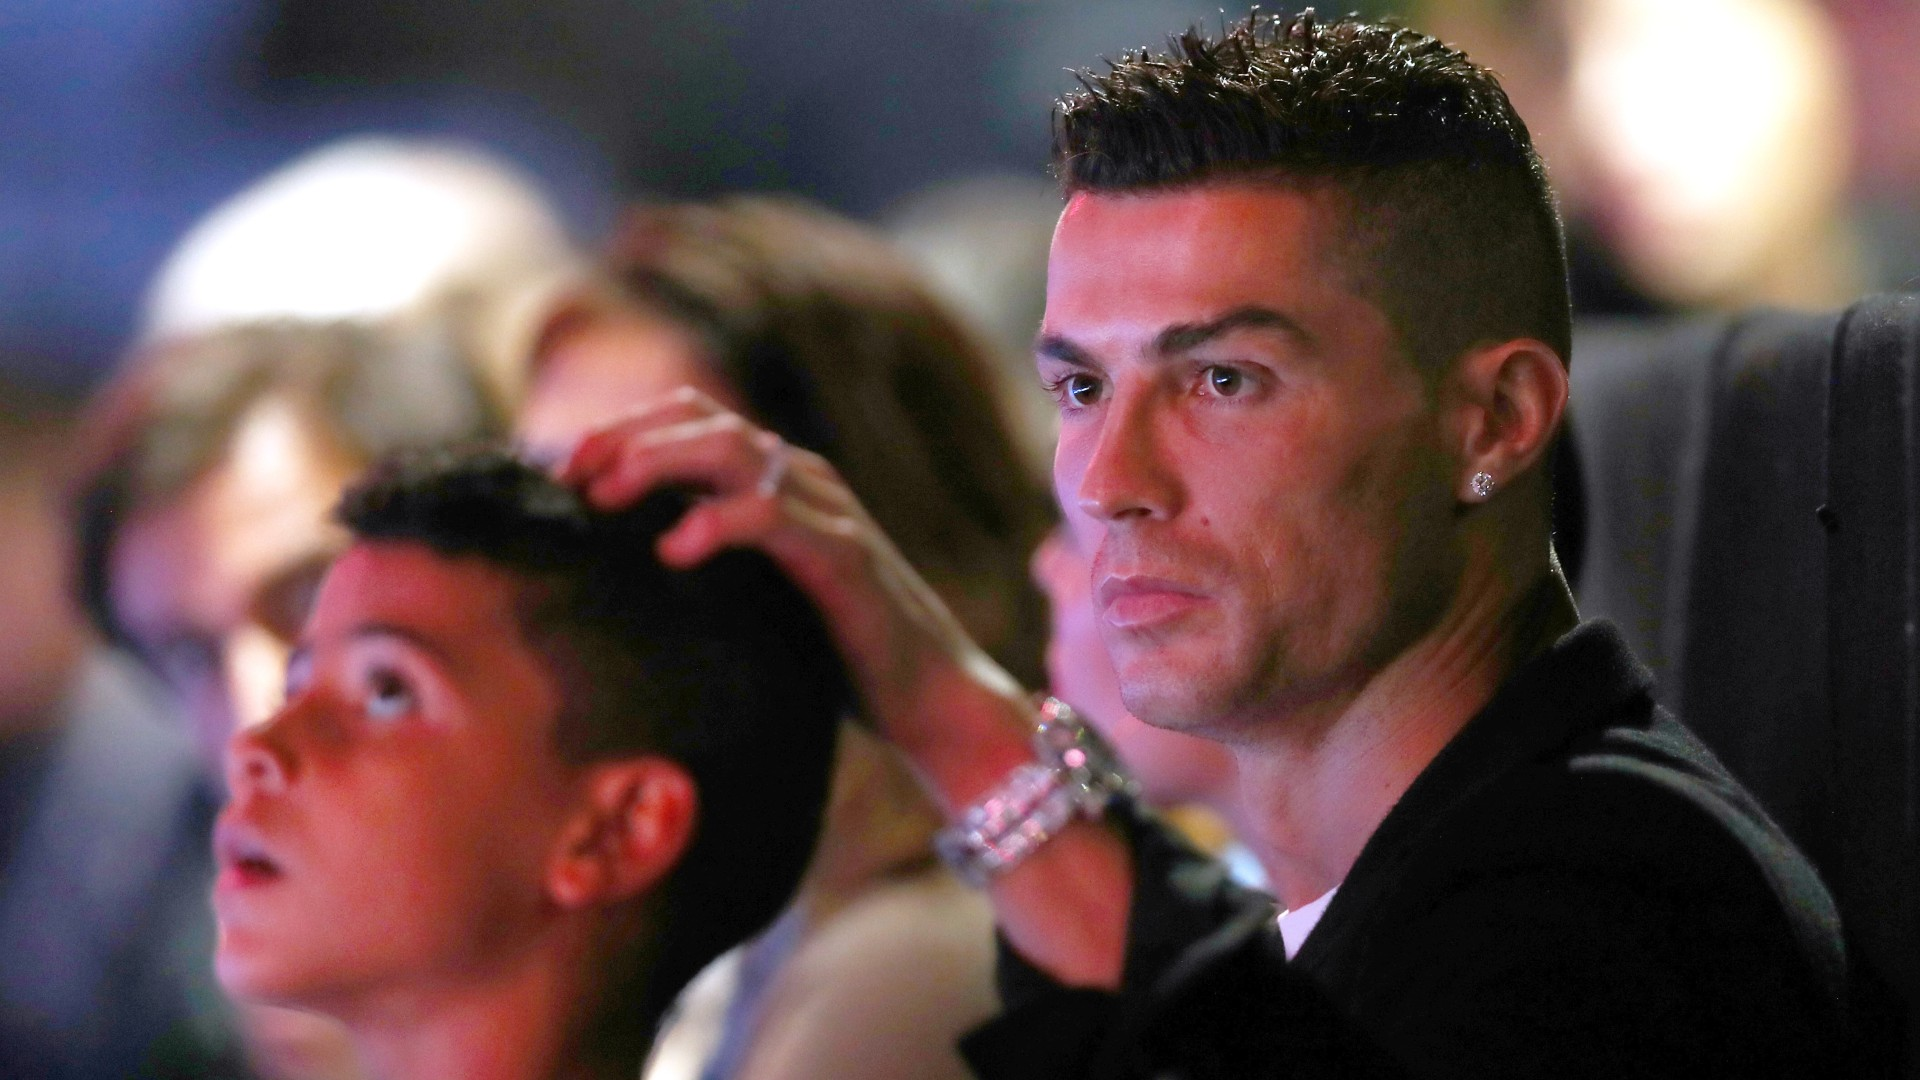 Ronaldo won't pressure his son to become a footballer but 'would like it' to happen